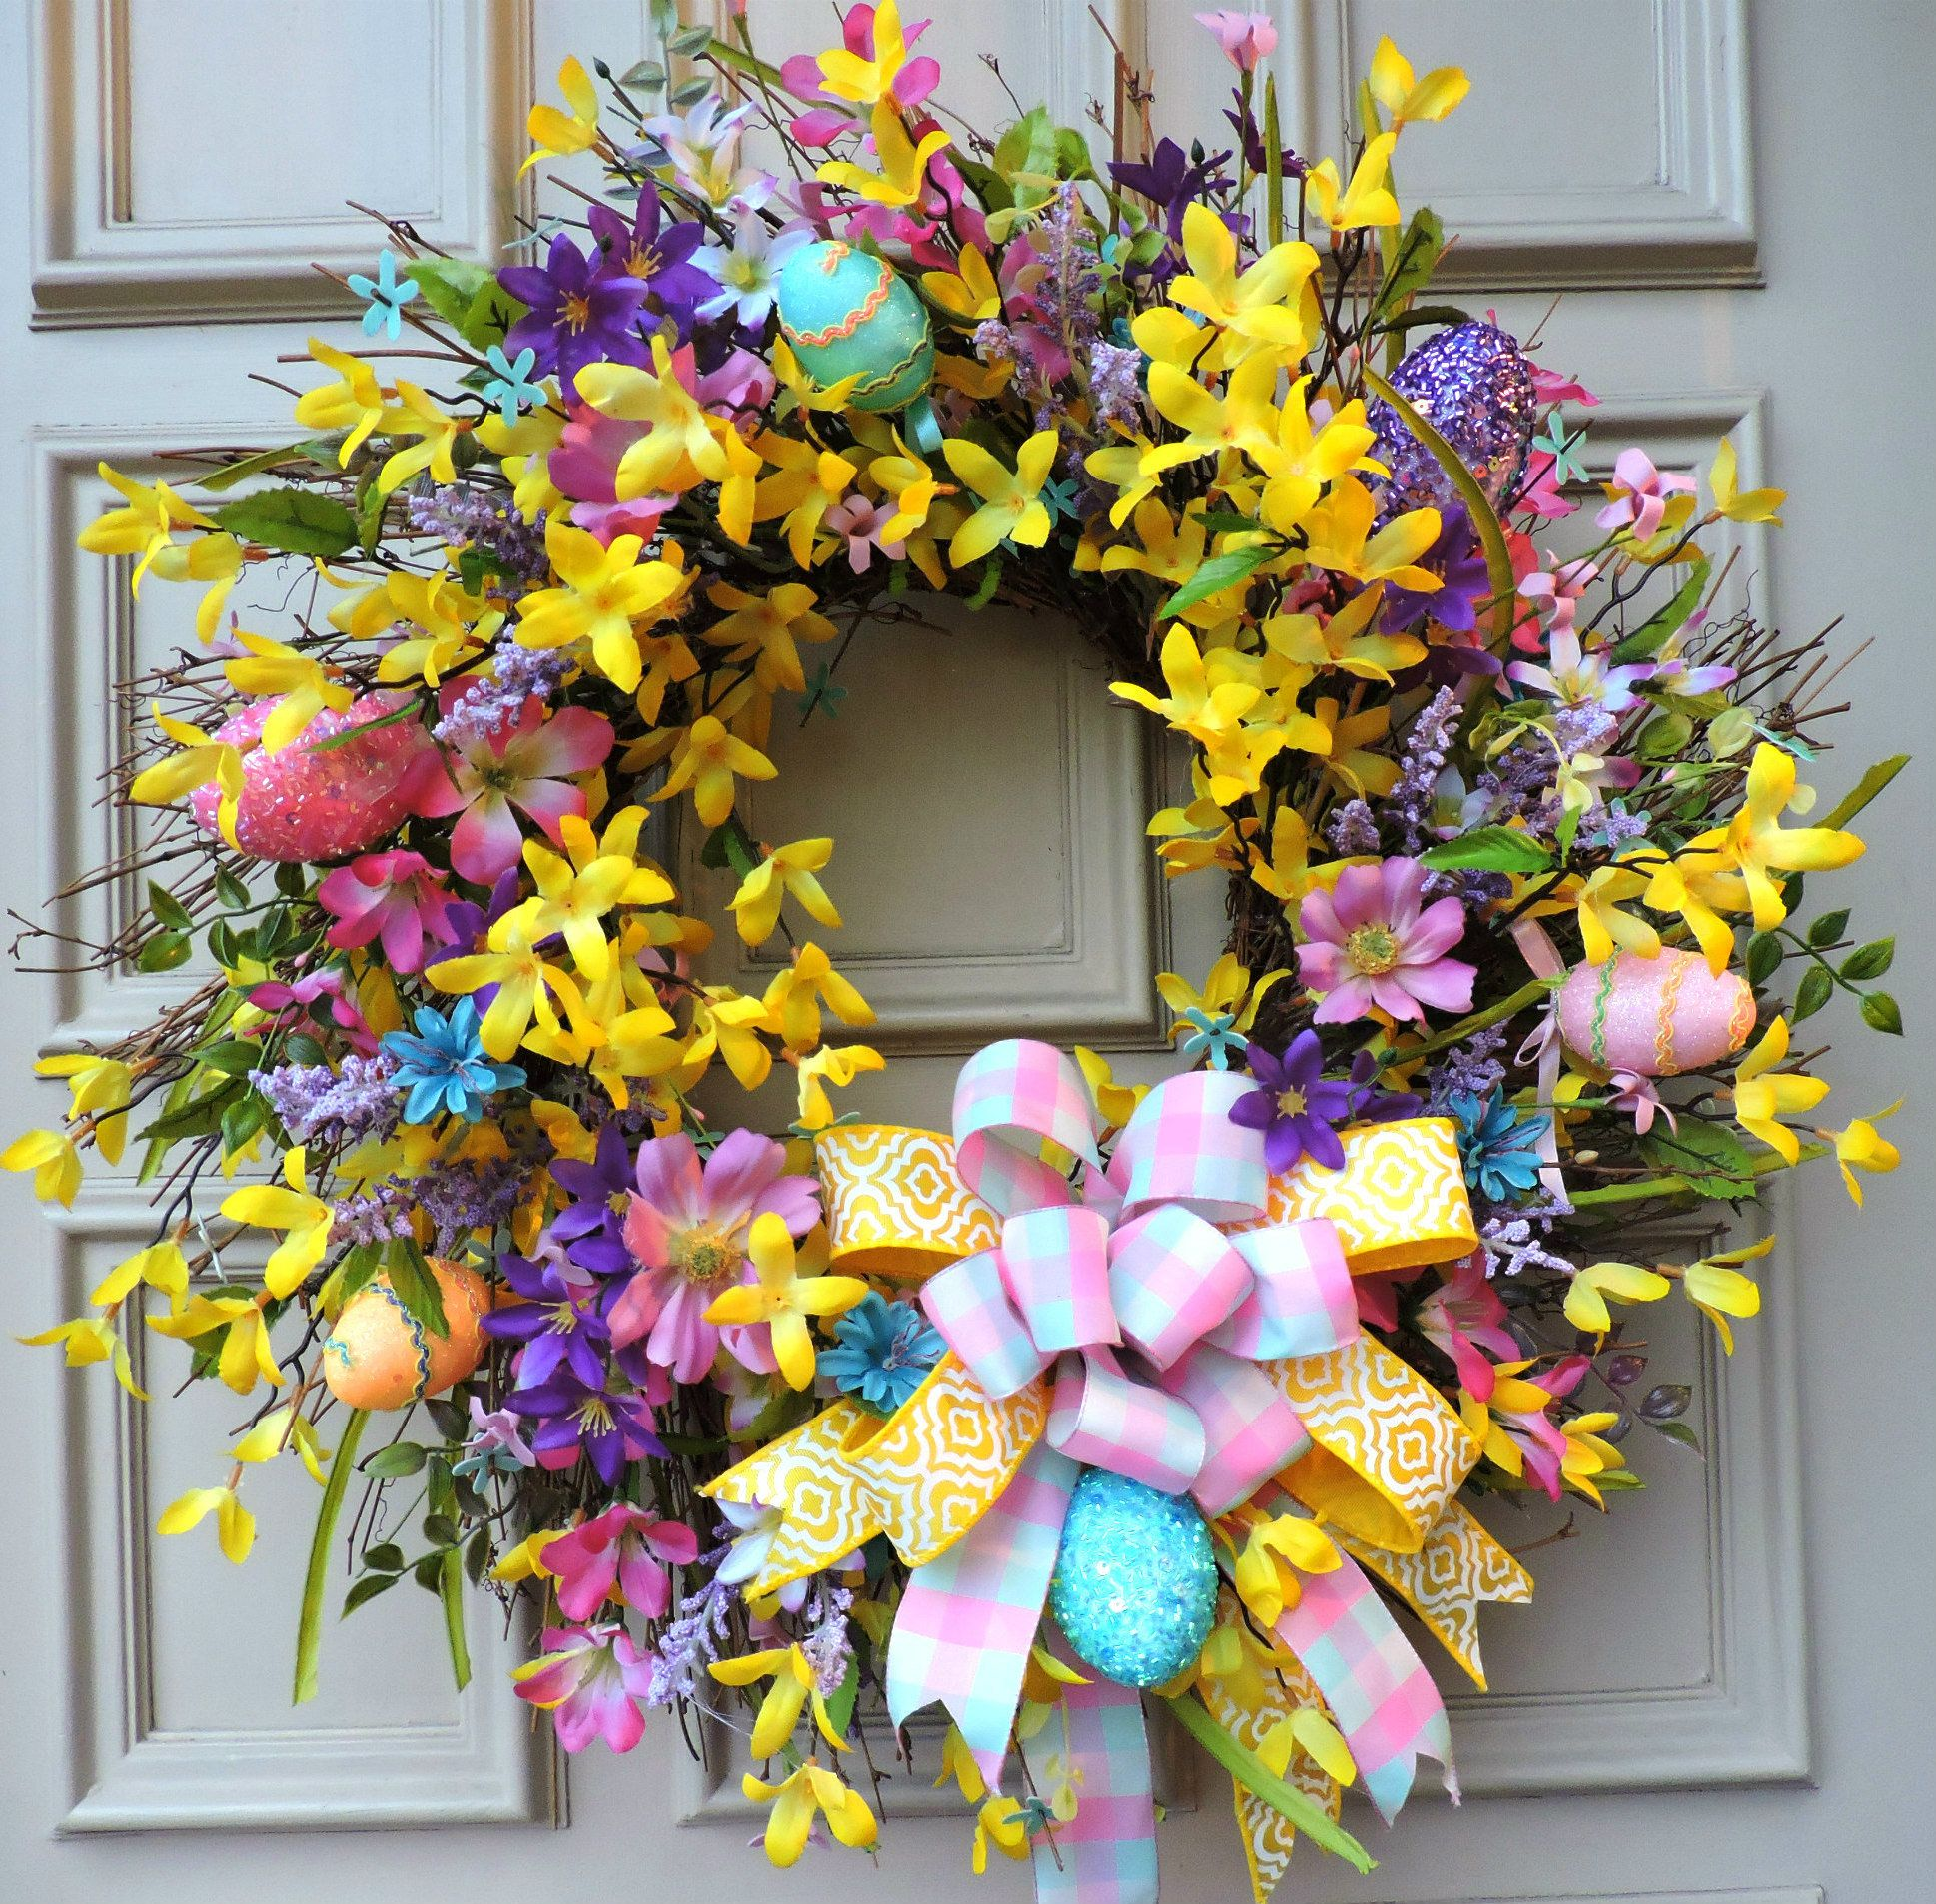 Easter Egg Wreath Pre-Lit for Front Door Easter Decor Hanging Ornaments for The Home Spring Wreath with Mixed Daisy Flowers Easter Wreath Twigs and Pastel Eggs for Easter Holiday Home Wall D/écor